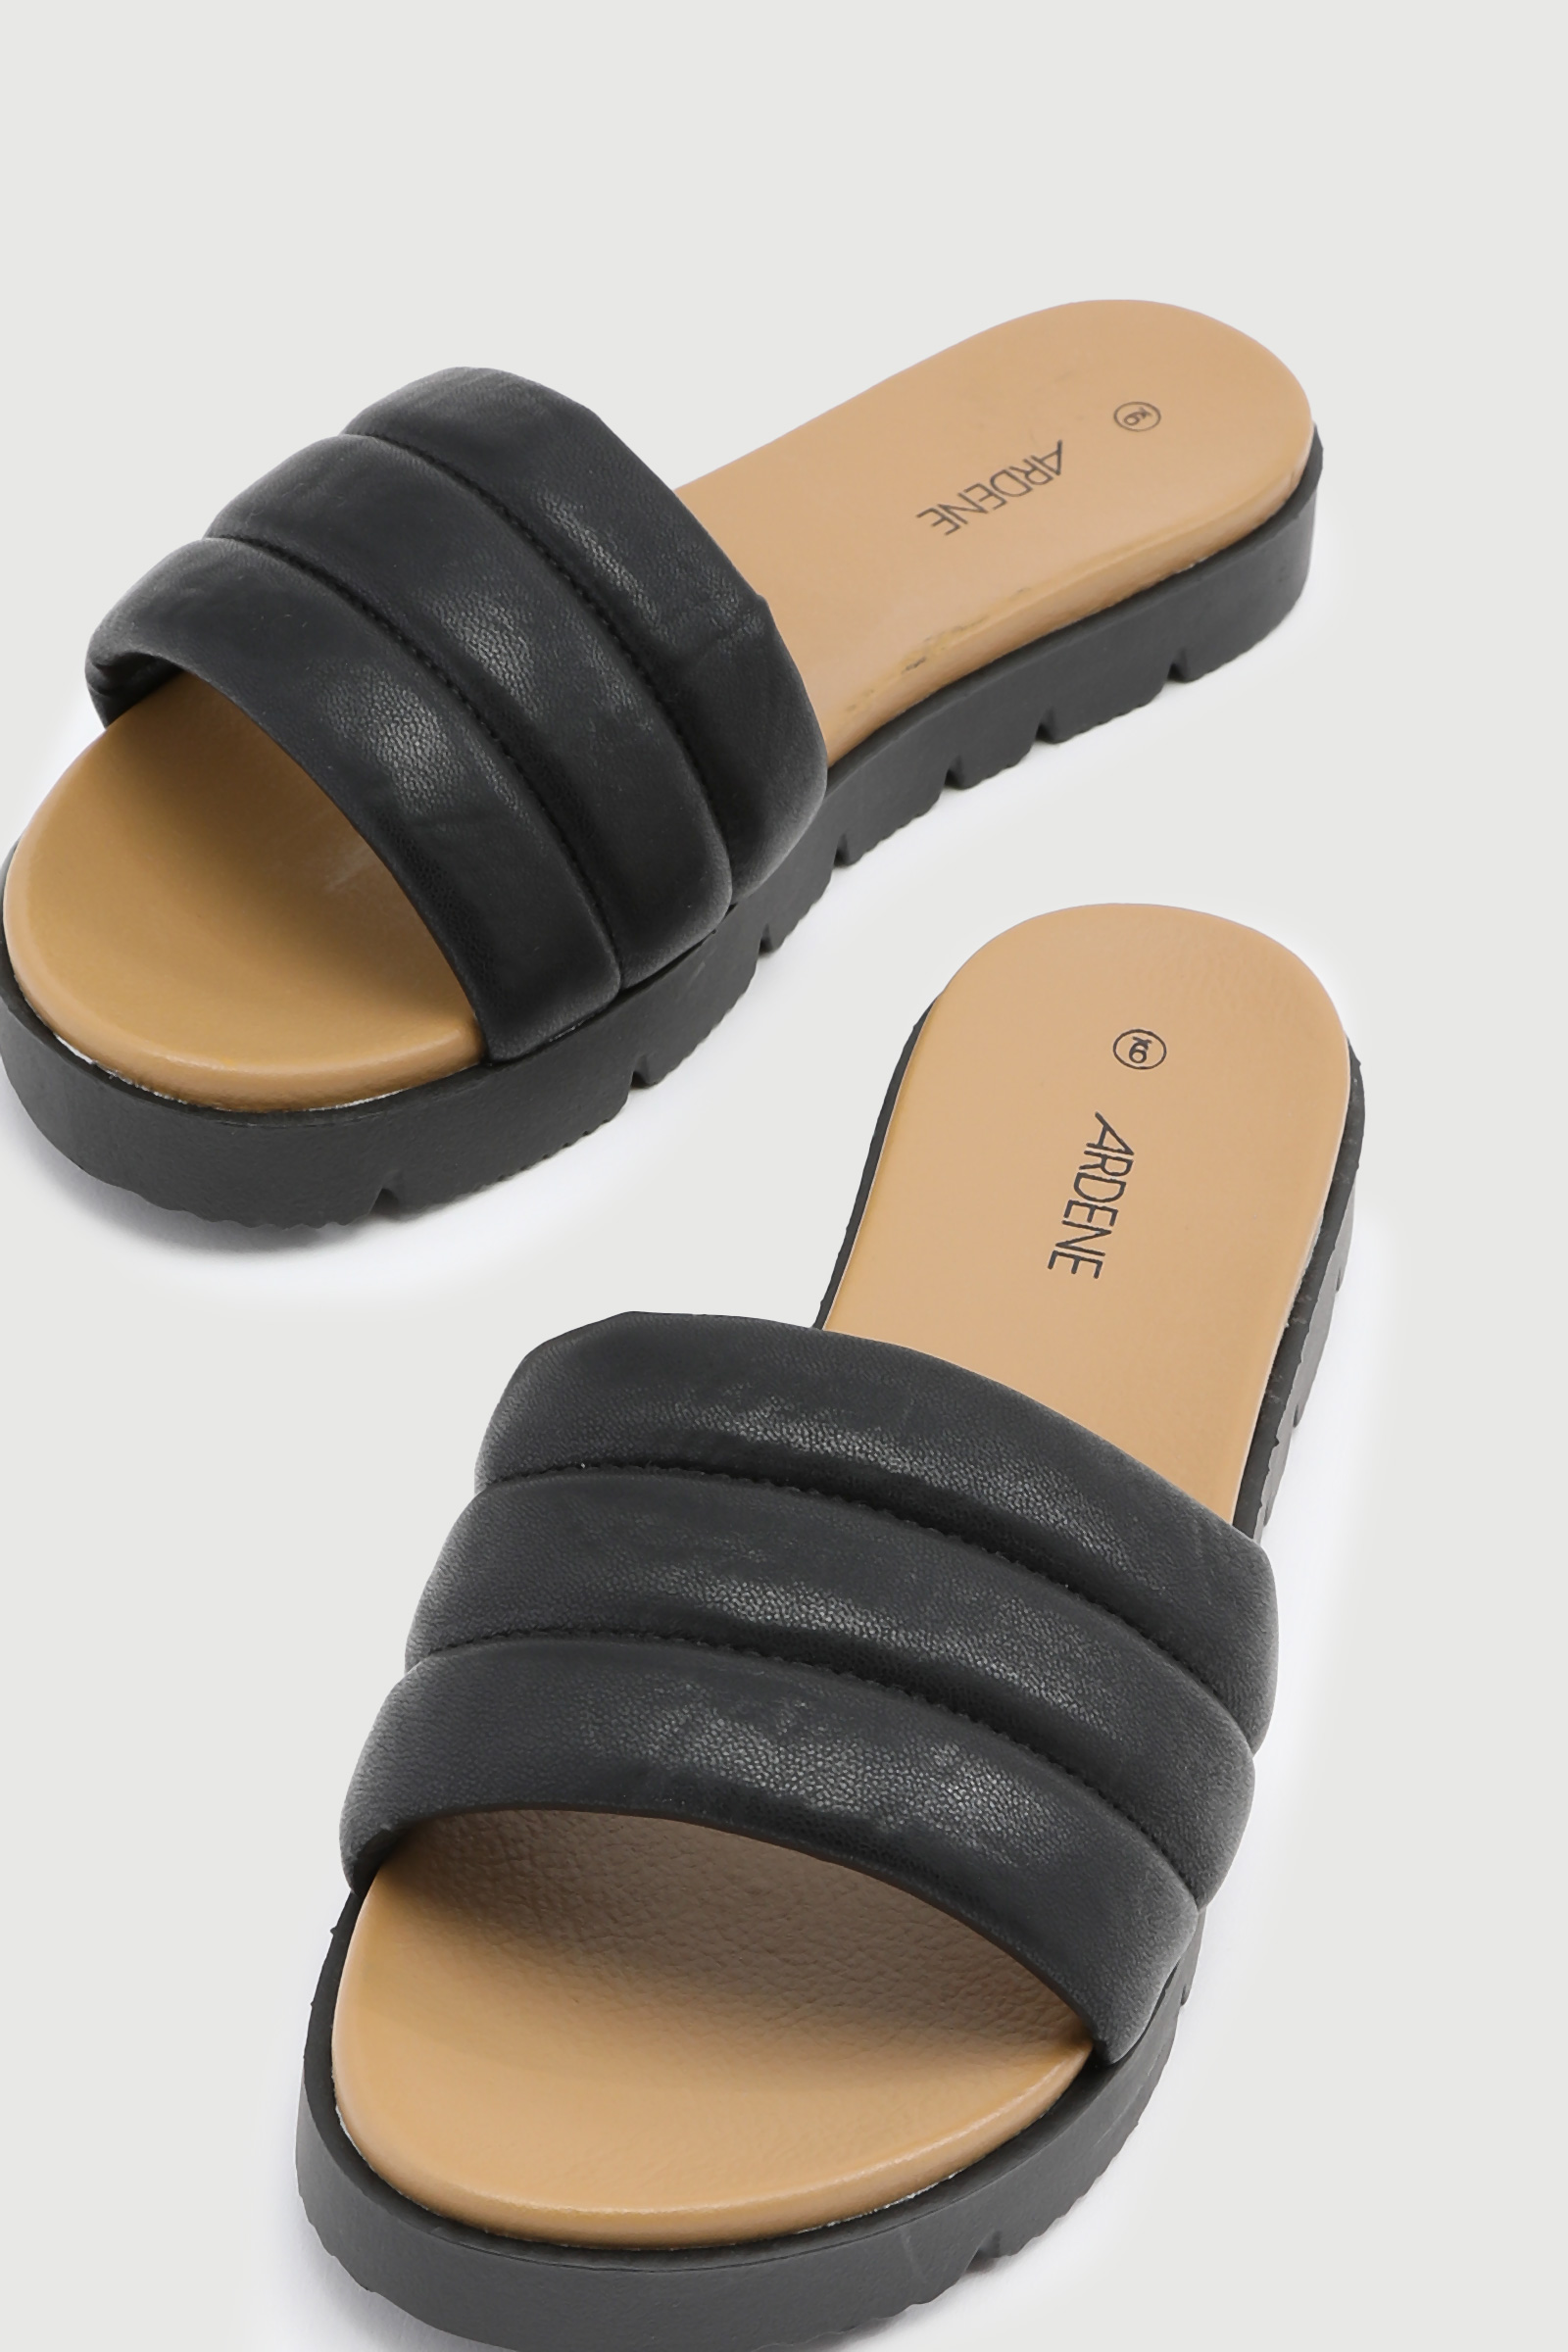 Puffy Quilted Slide Sandals